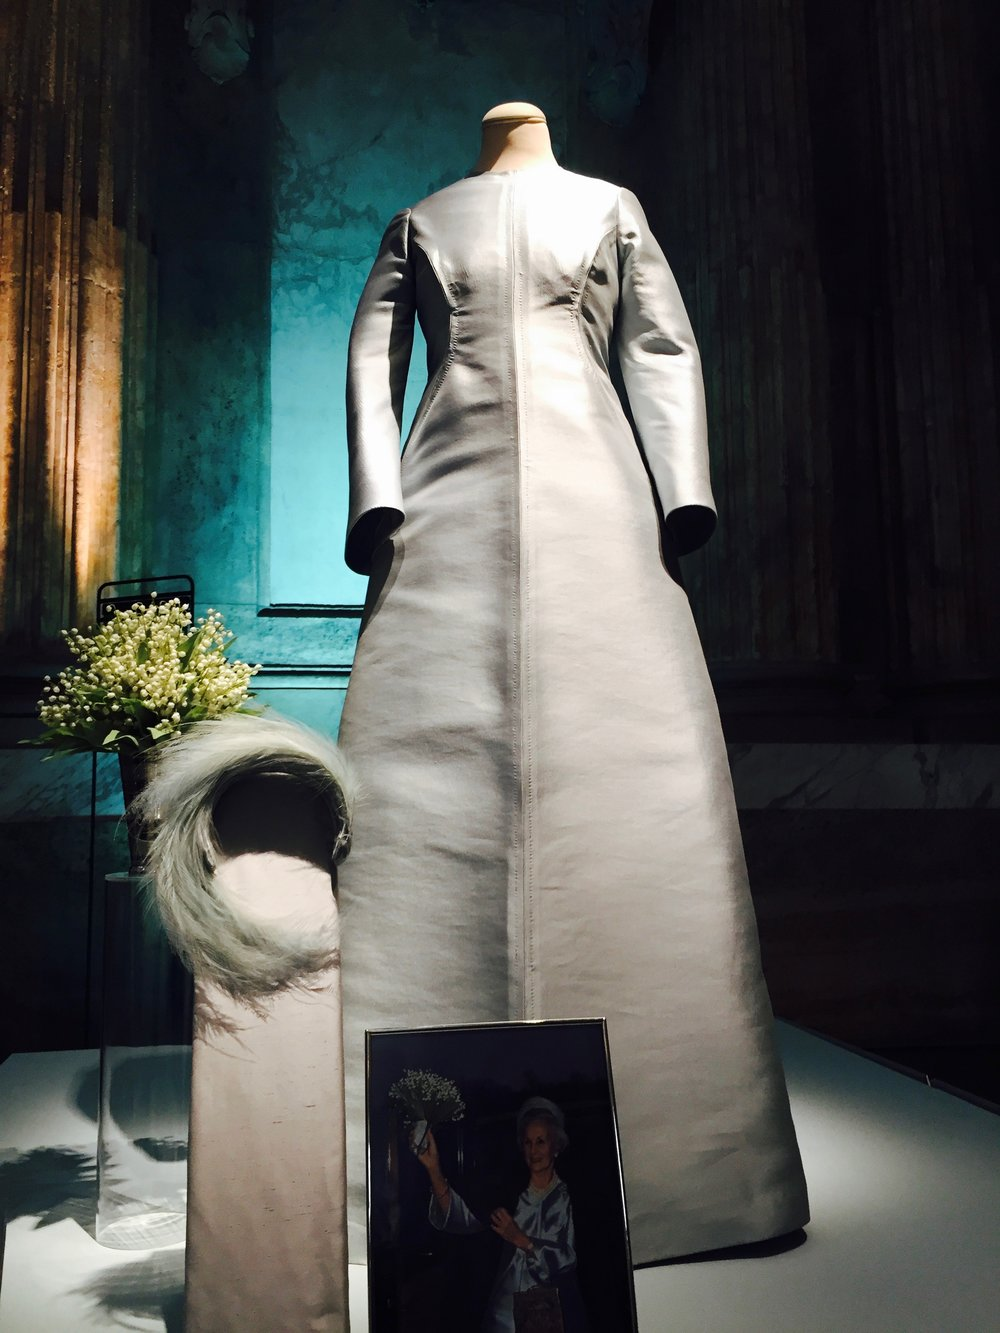 Princess Lilian and Prince Bertil have the best love story. Here's her blue sweet wedding dress.